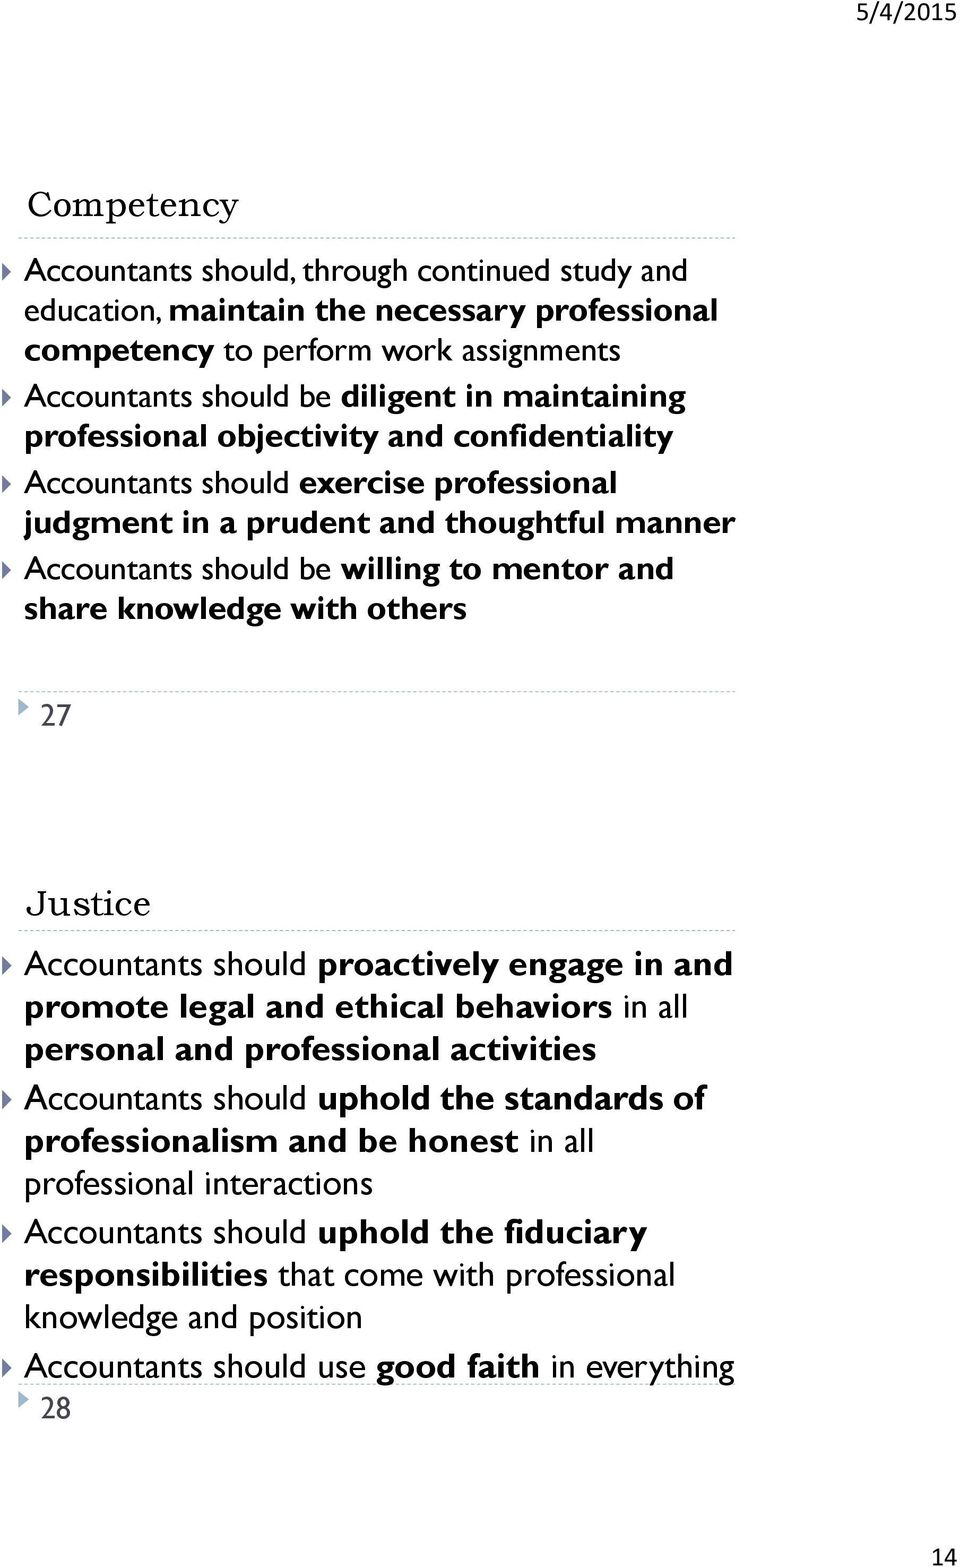 others 27 Justice Accountants should proactively engage in and promote legal and ethical behaviors in all personal and professional activities Accountants should uphold the standards of